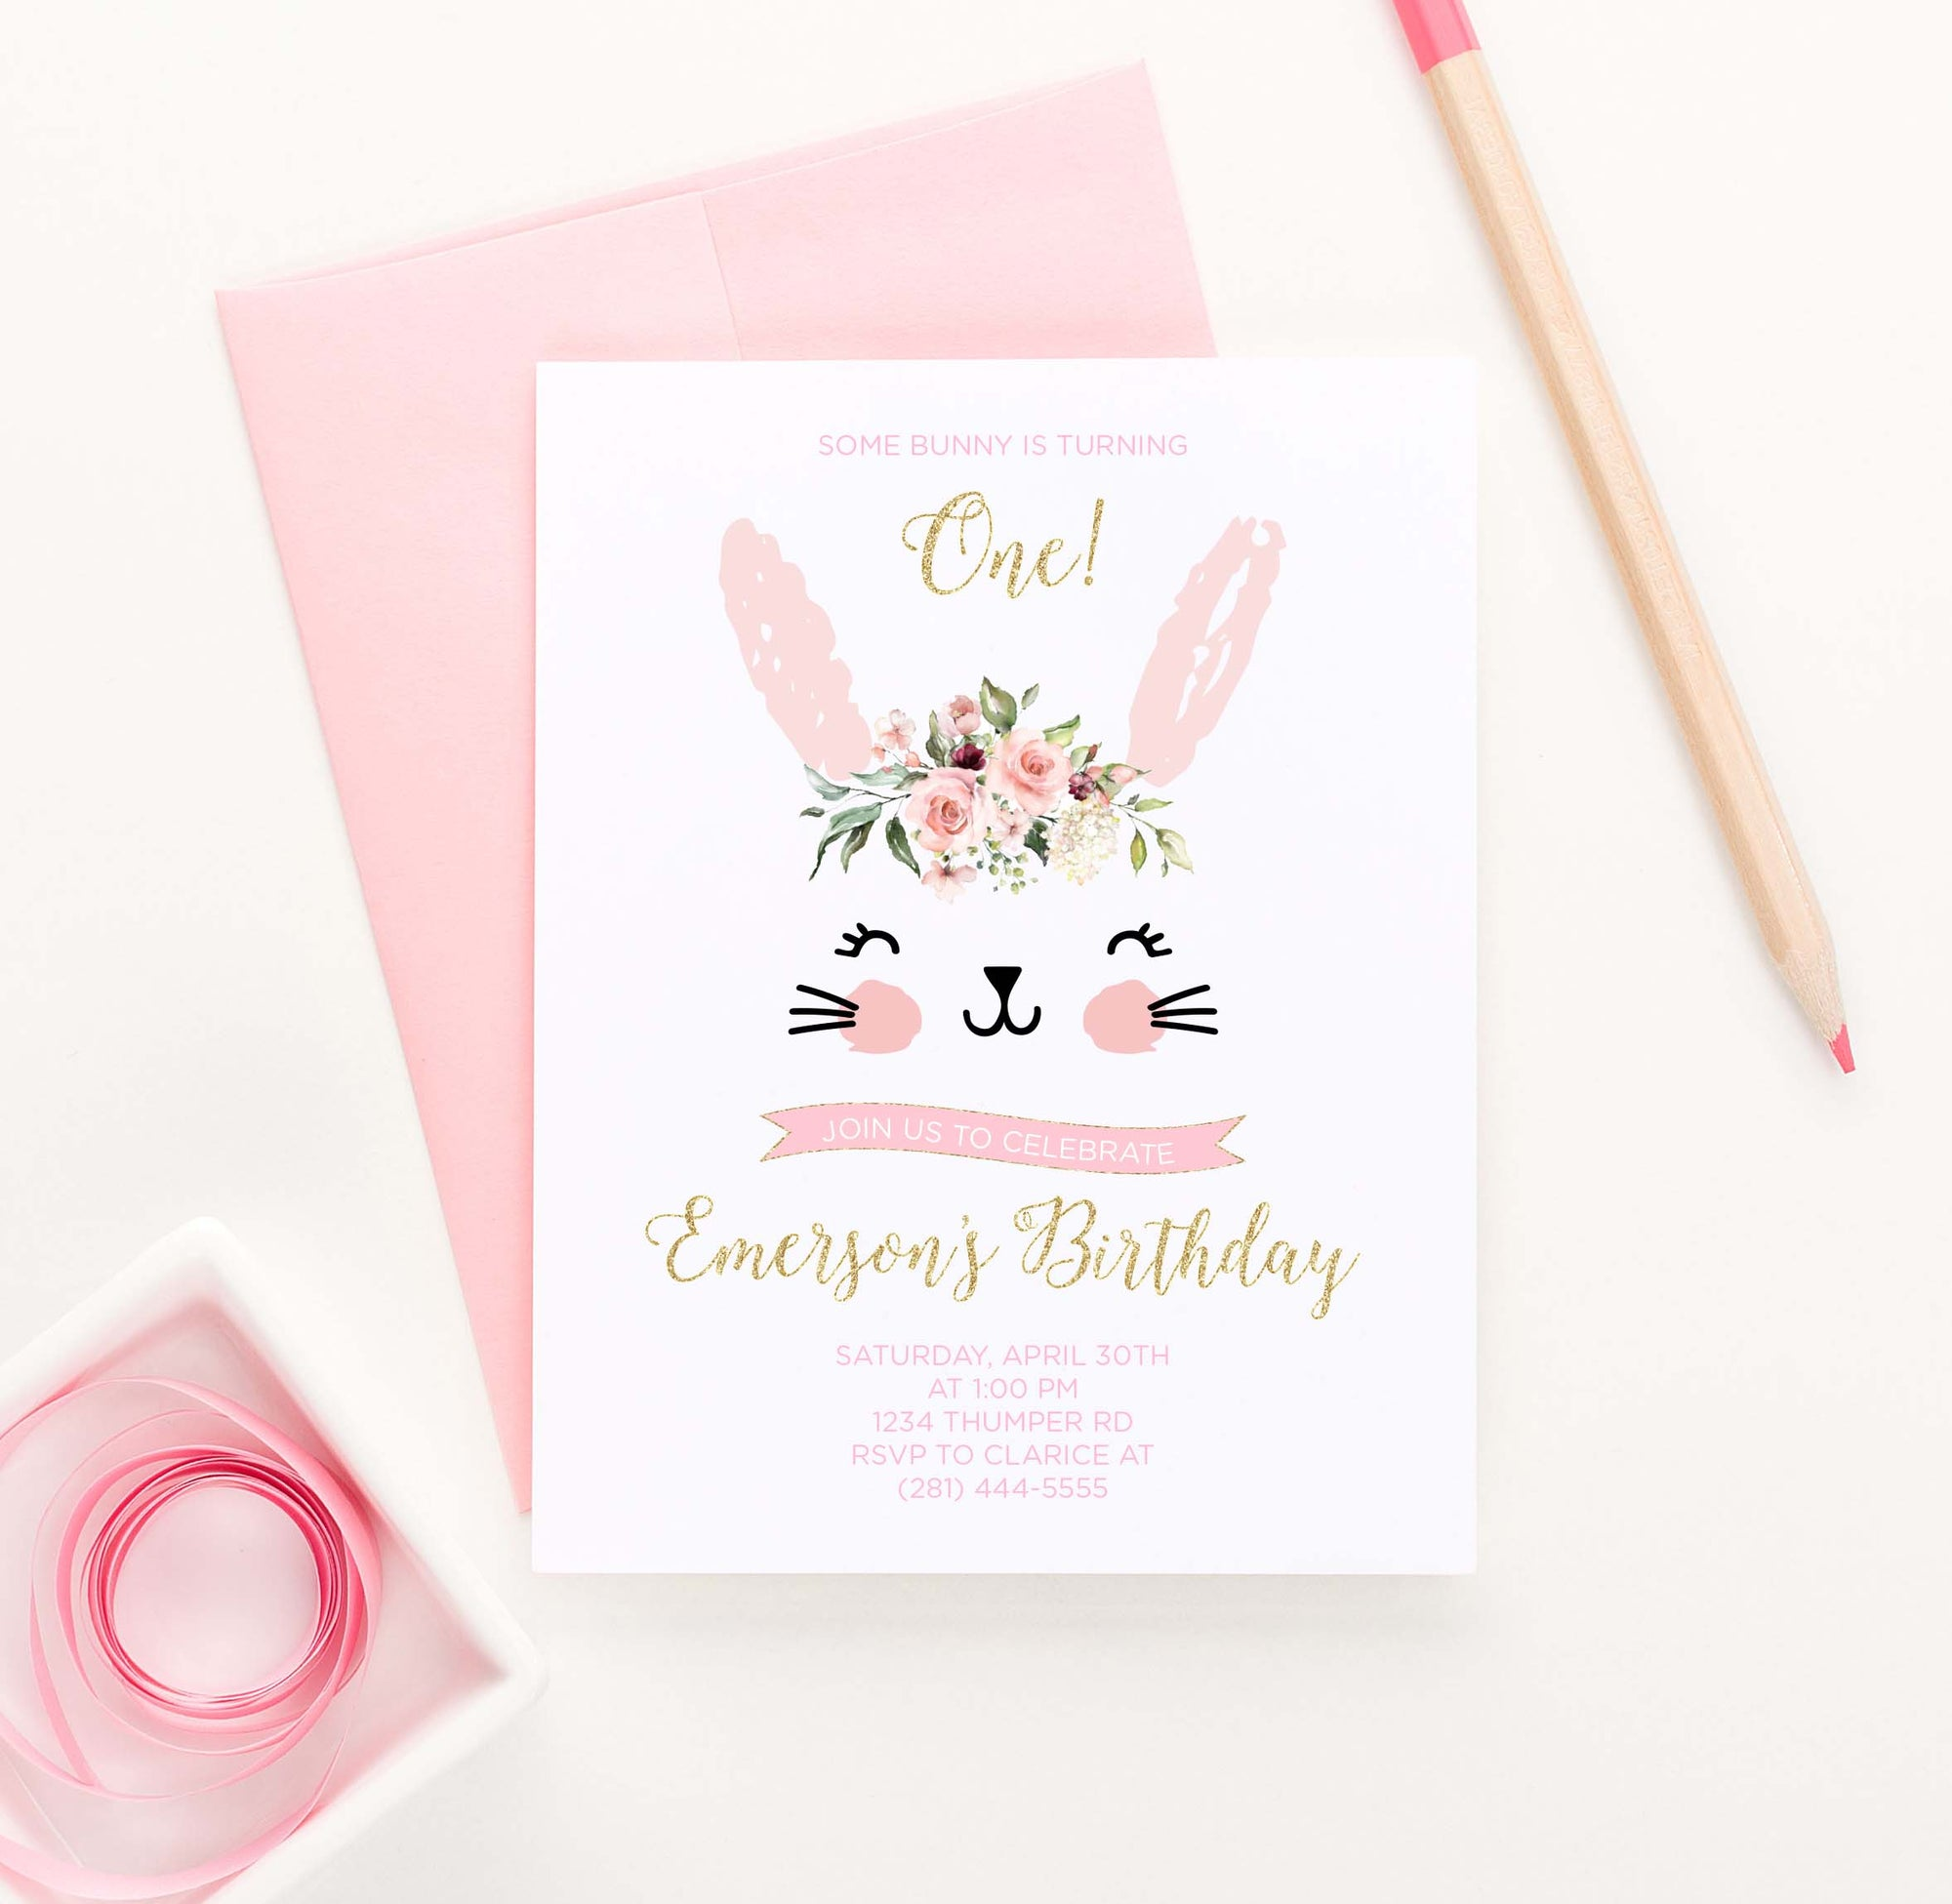 BI048 cute bunny birthday party invites personalized rabbit florals animal